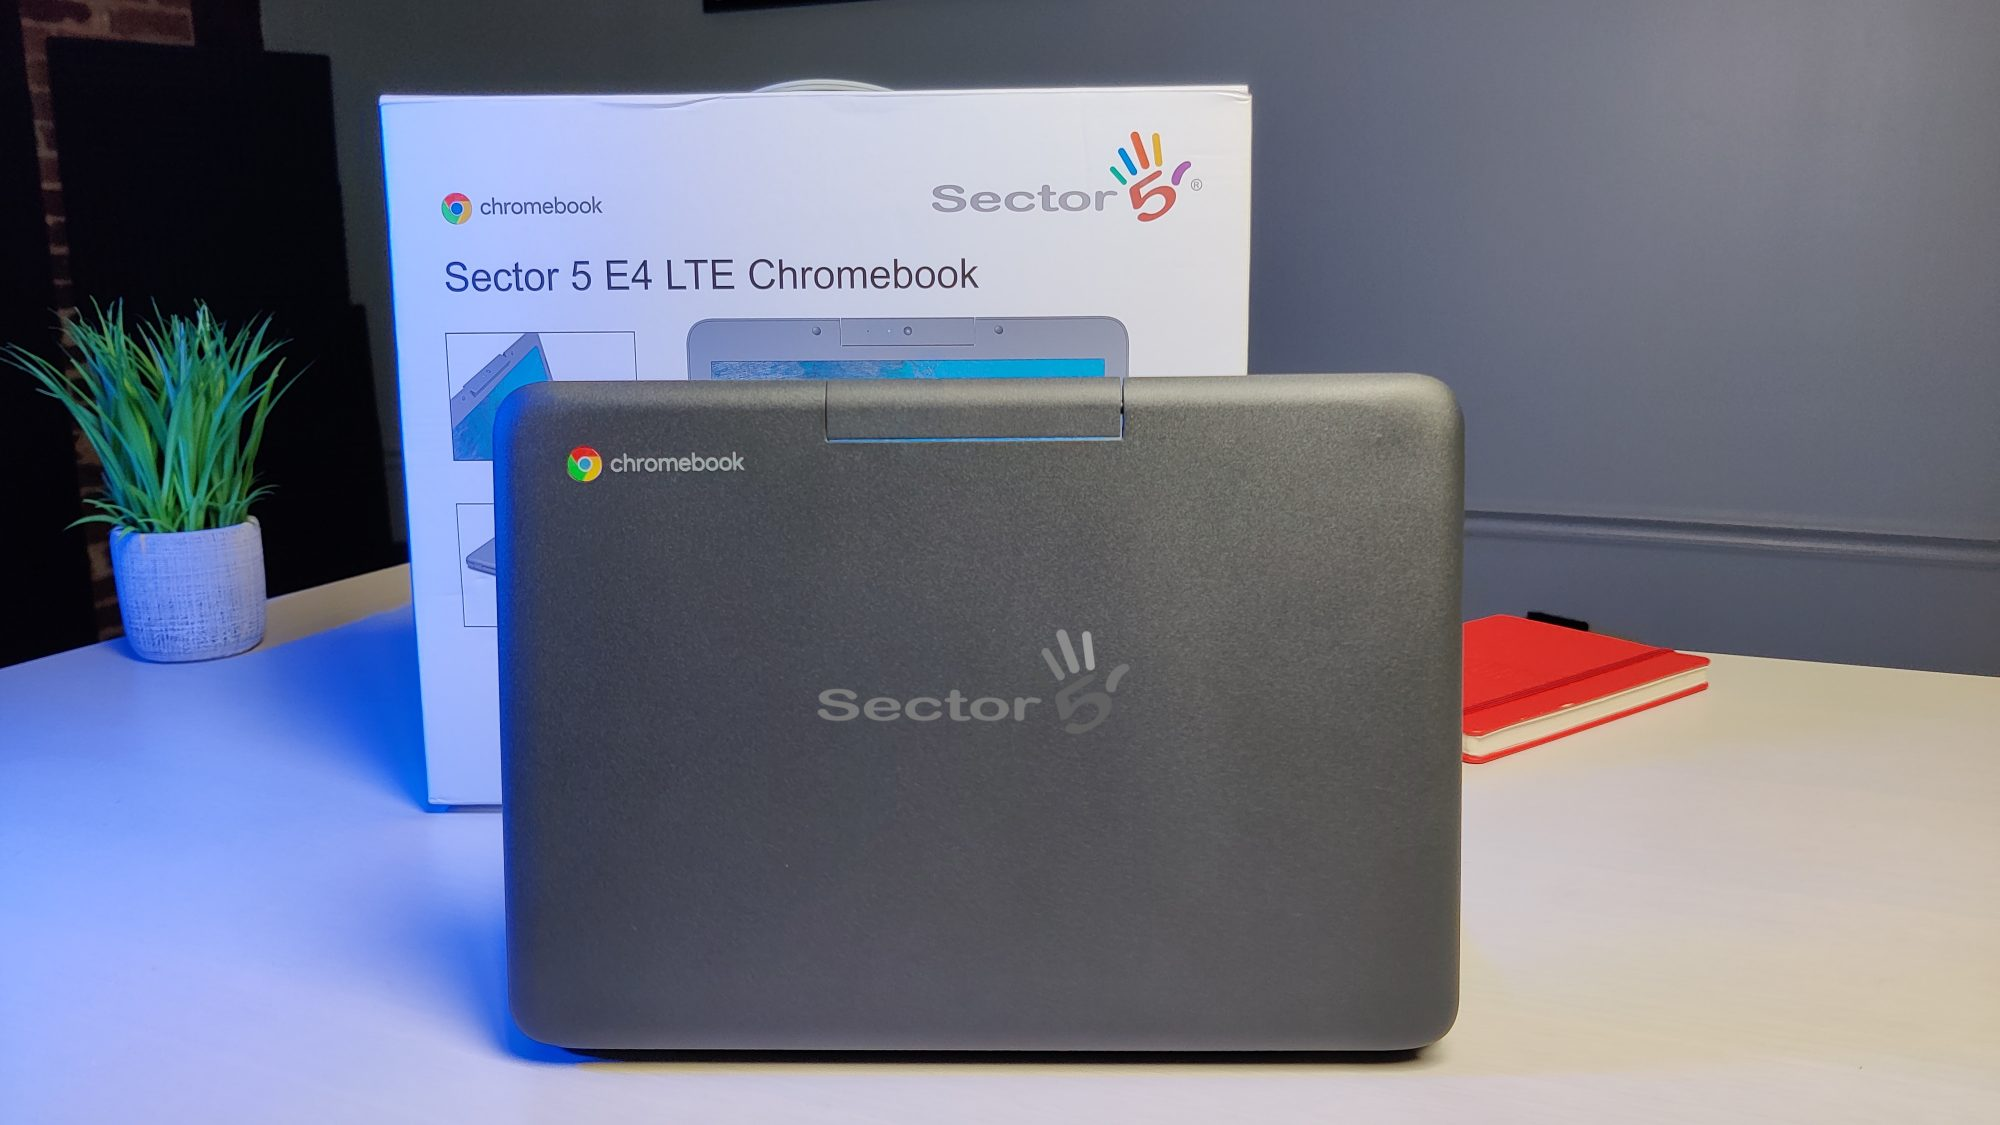 EXCLUSIVE: First look at the Sector 5 LTE Chromebook E4